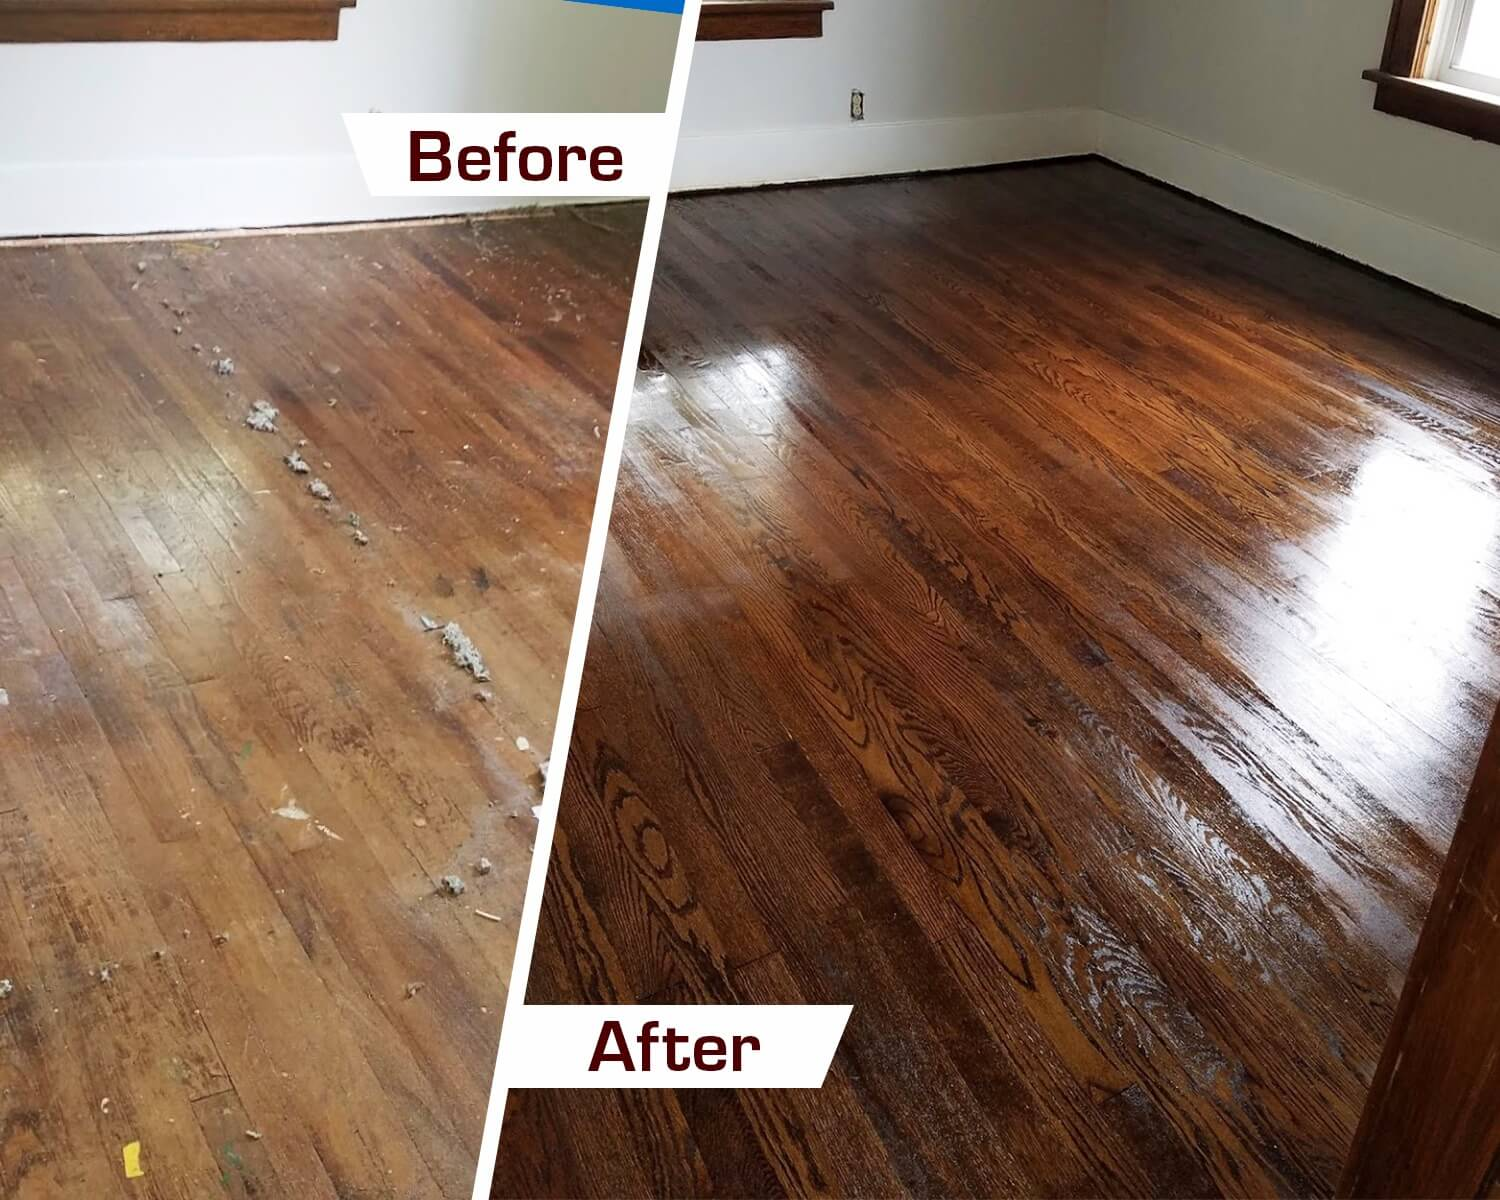 Hardwood floor refinishing project